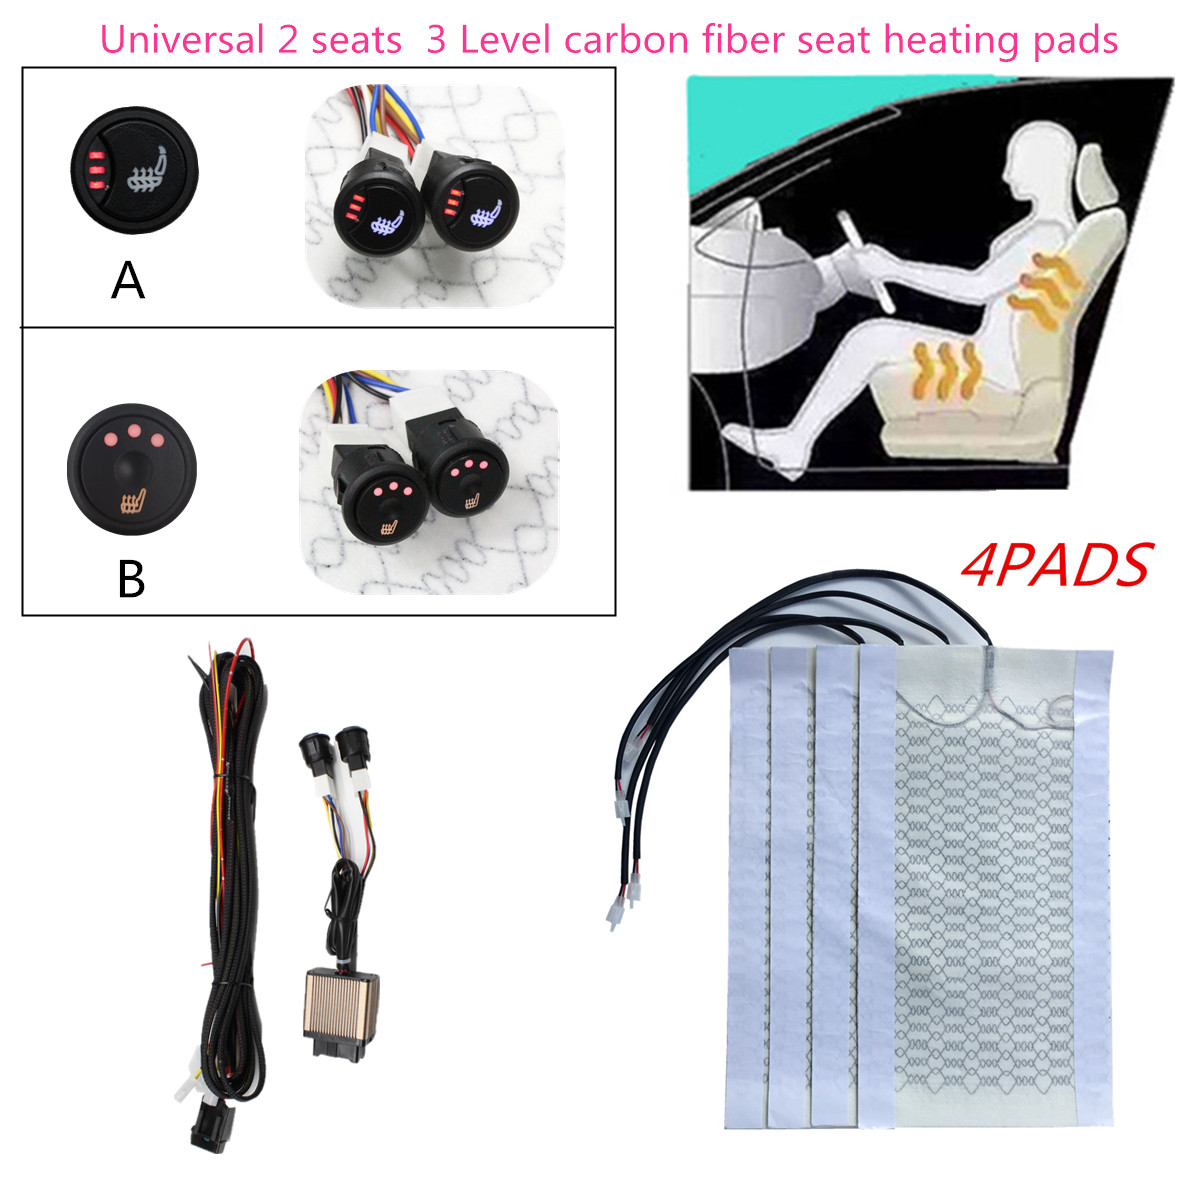 Car-Seat-Heater Round-Switch Heating Carbon-Fiber 12v-Seat for Beautiful Upgrade Any title=